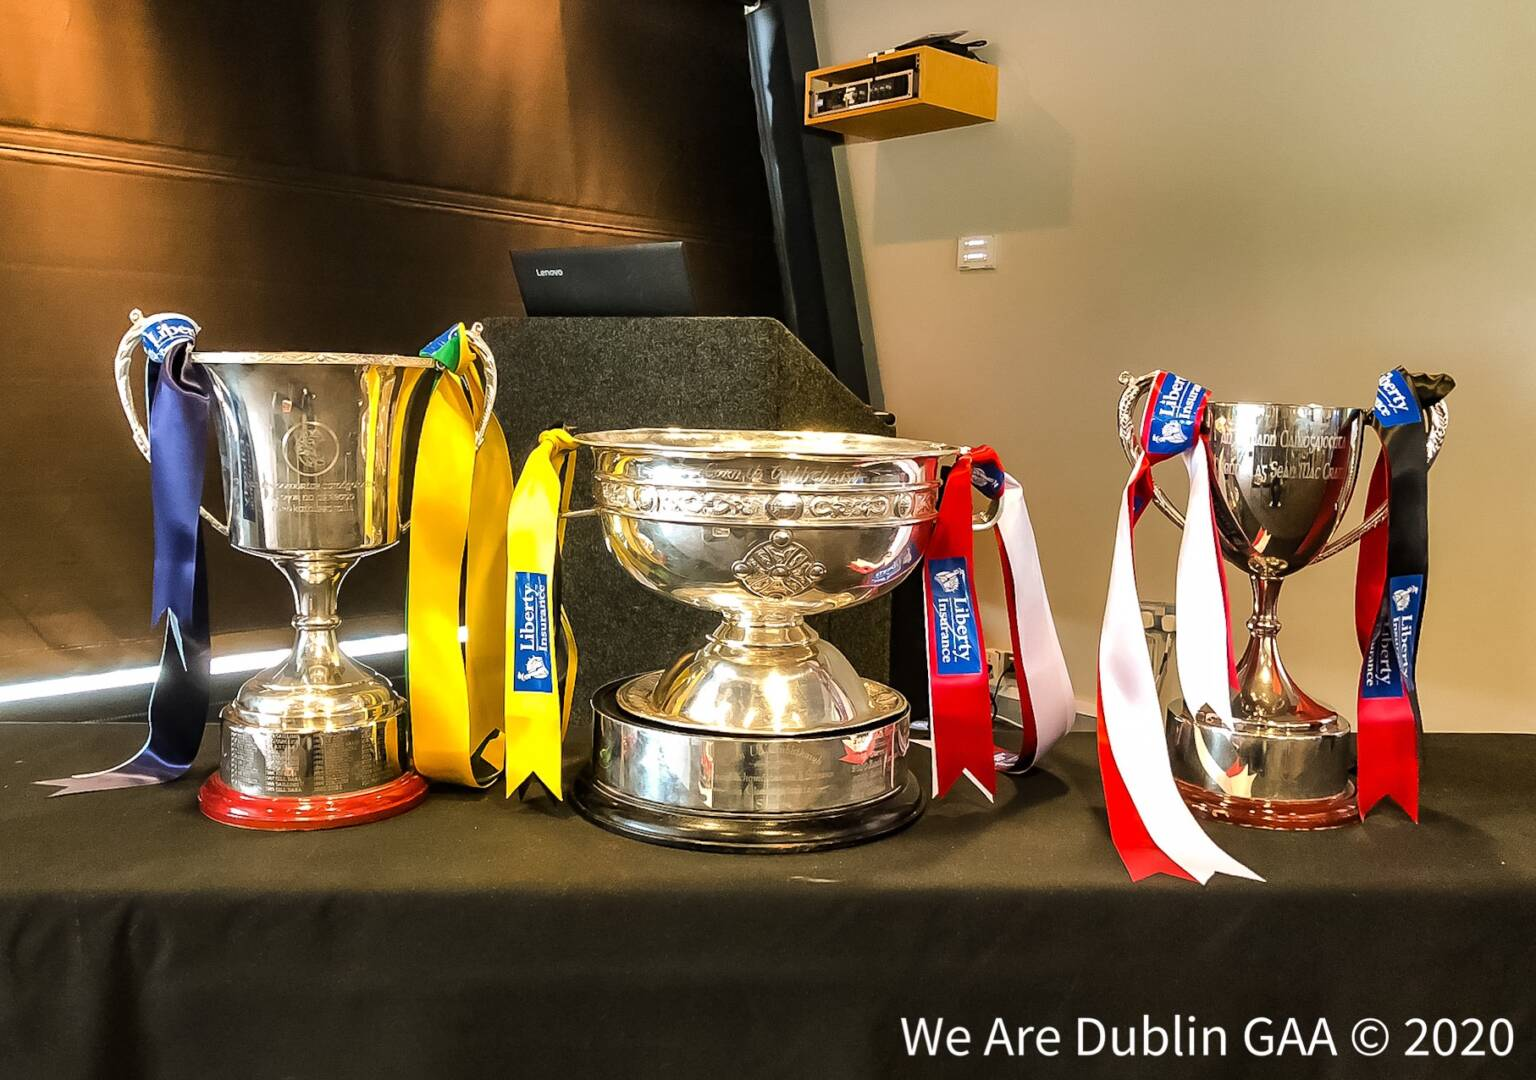 The three All Ireland trophys thats teams will be playing for in the All Ireland Camogie Championships